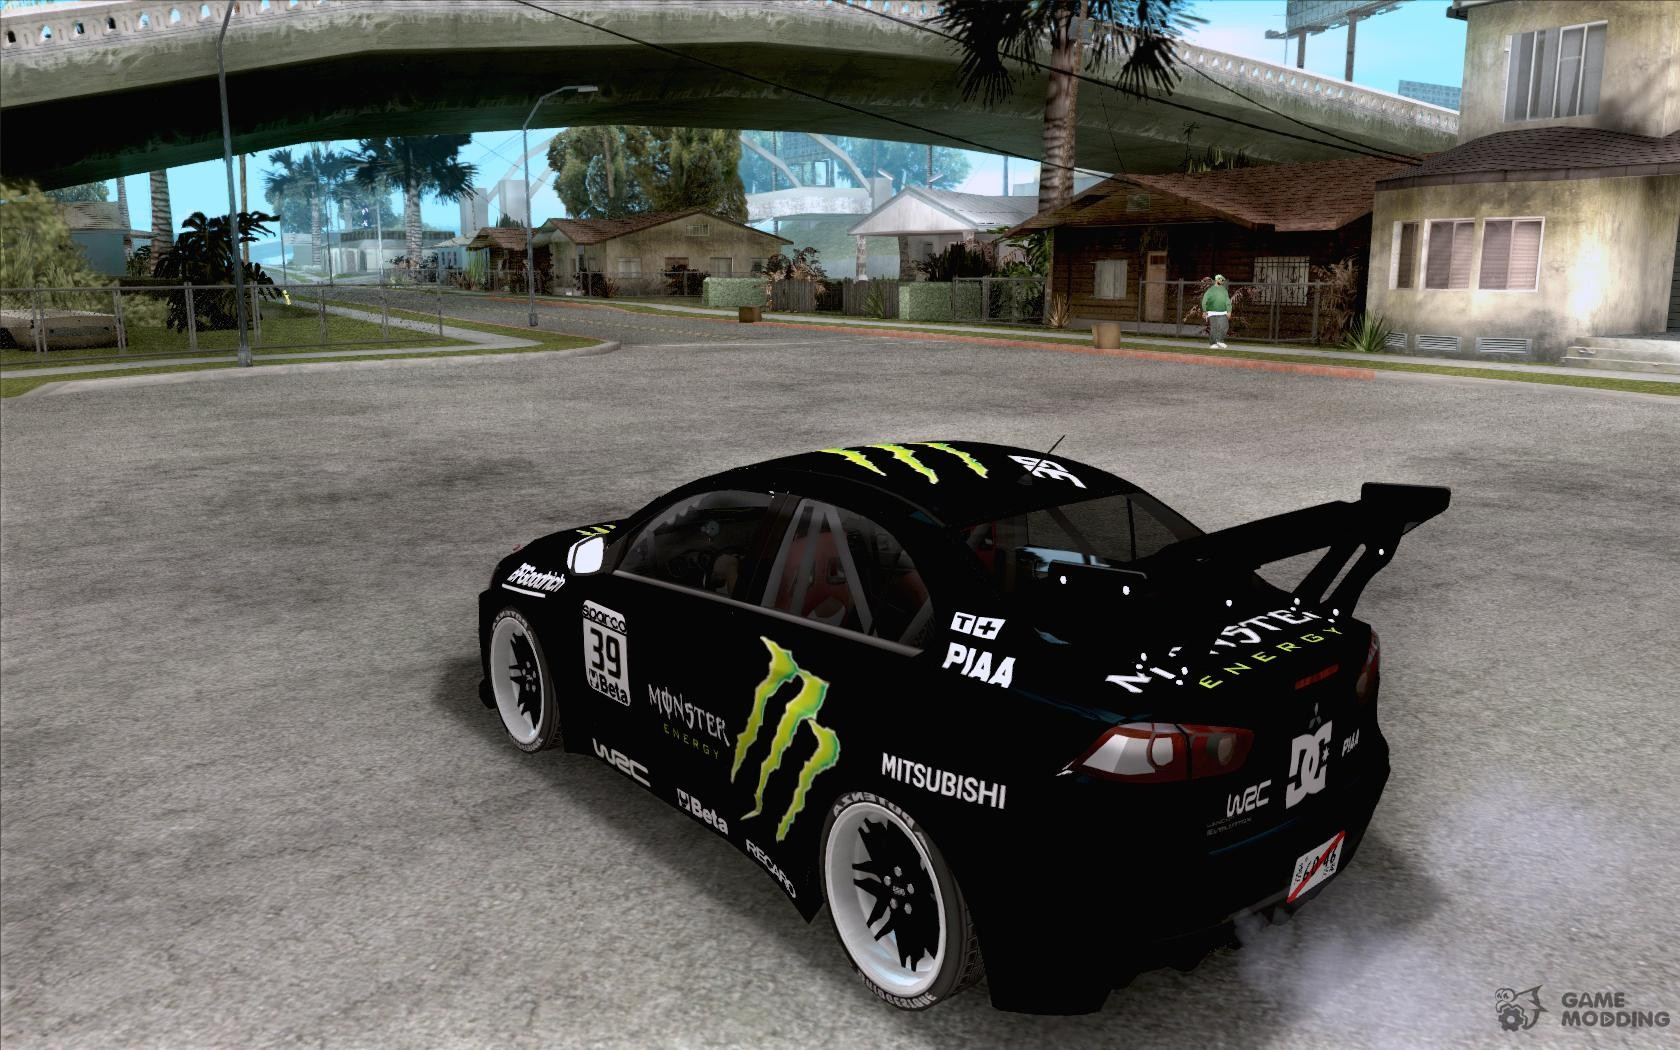 Delightful Mitsubishi Lancer Evolution X Monster Energy For GTA San Andreas Rear Left  View Awesome Design